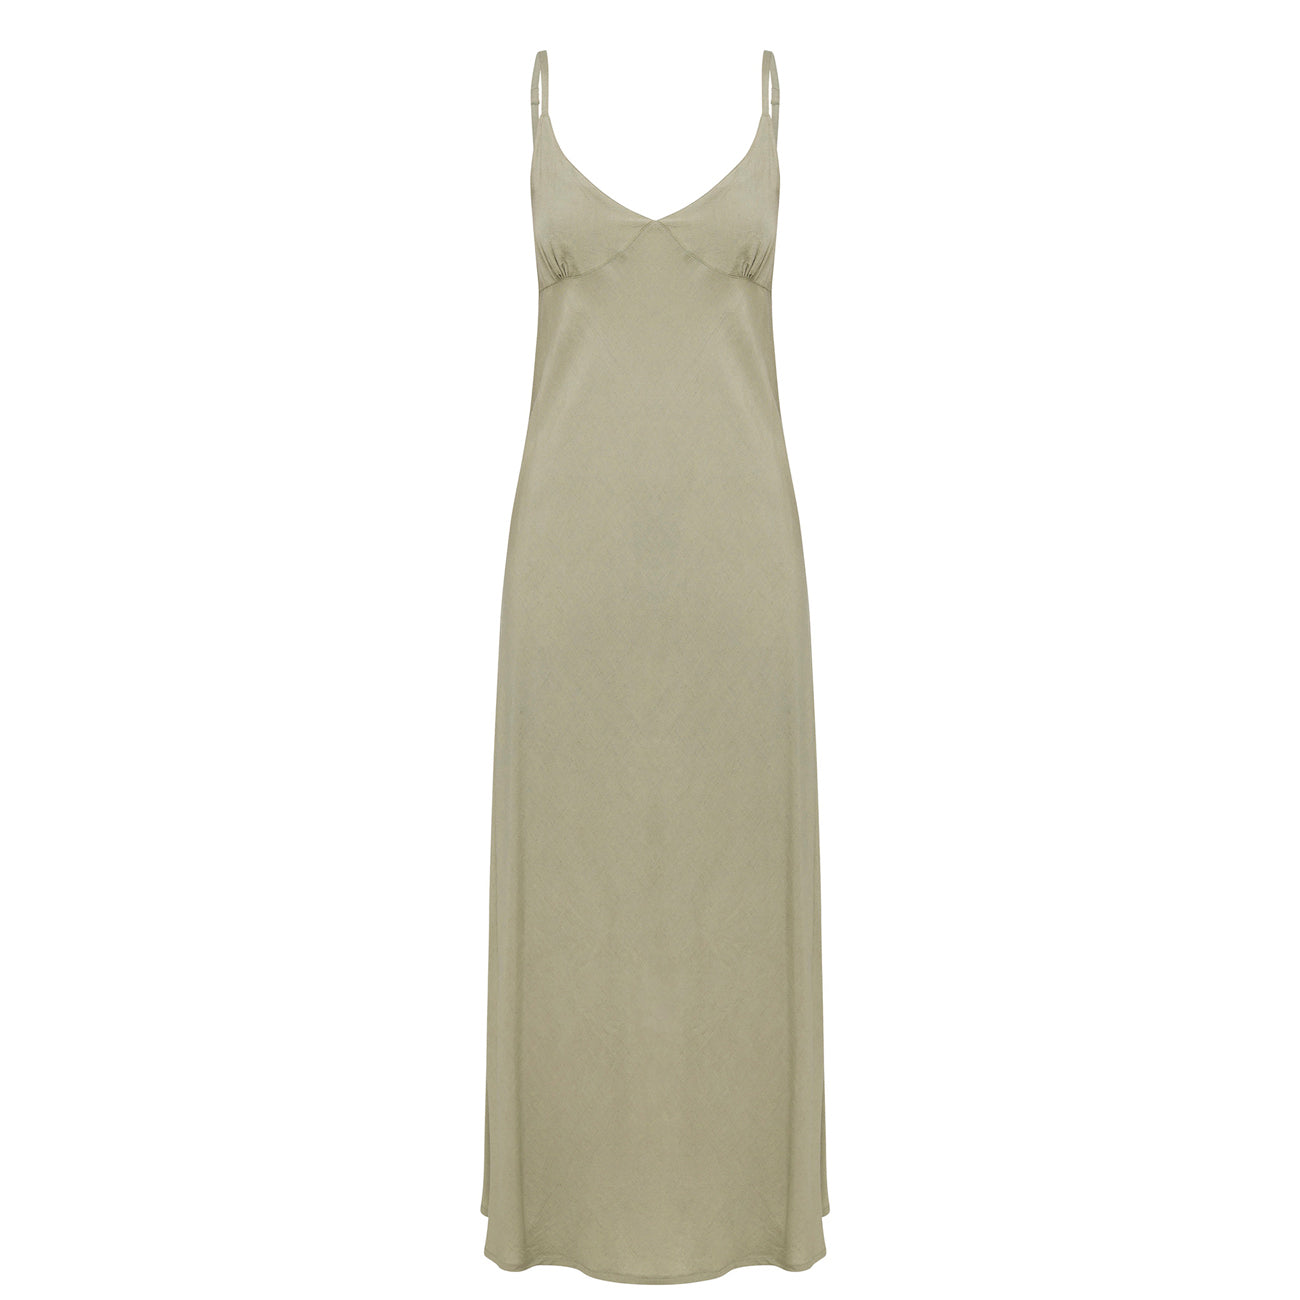 joelle dress in sage